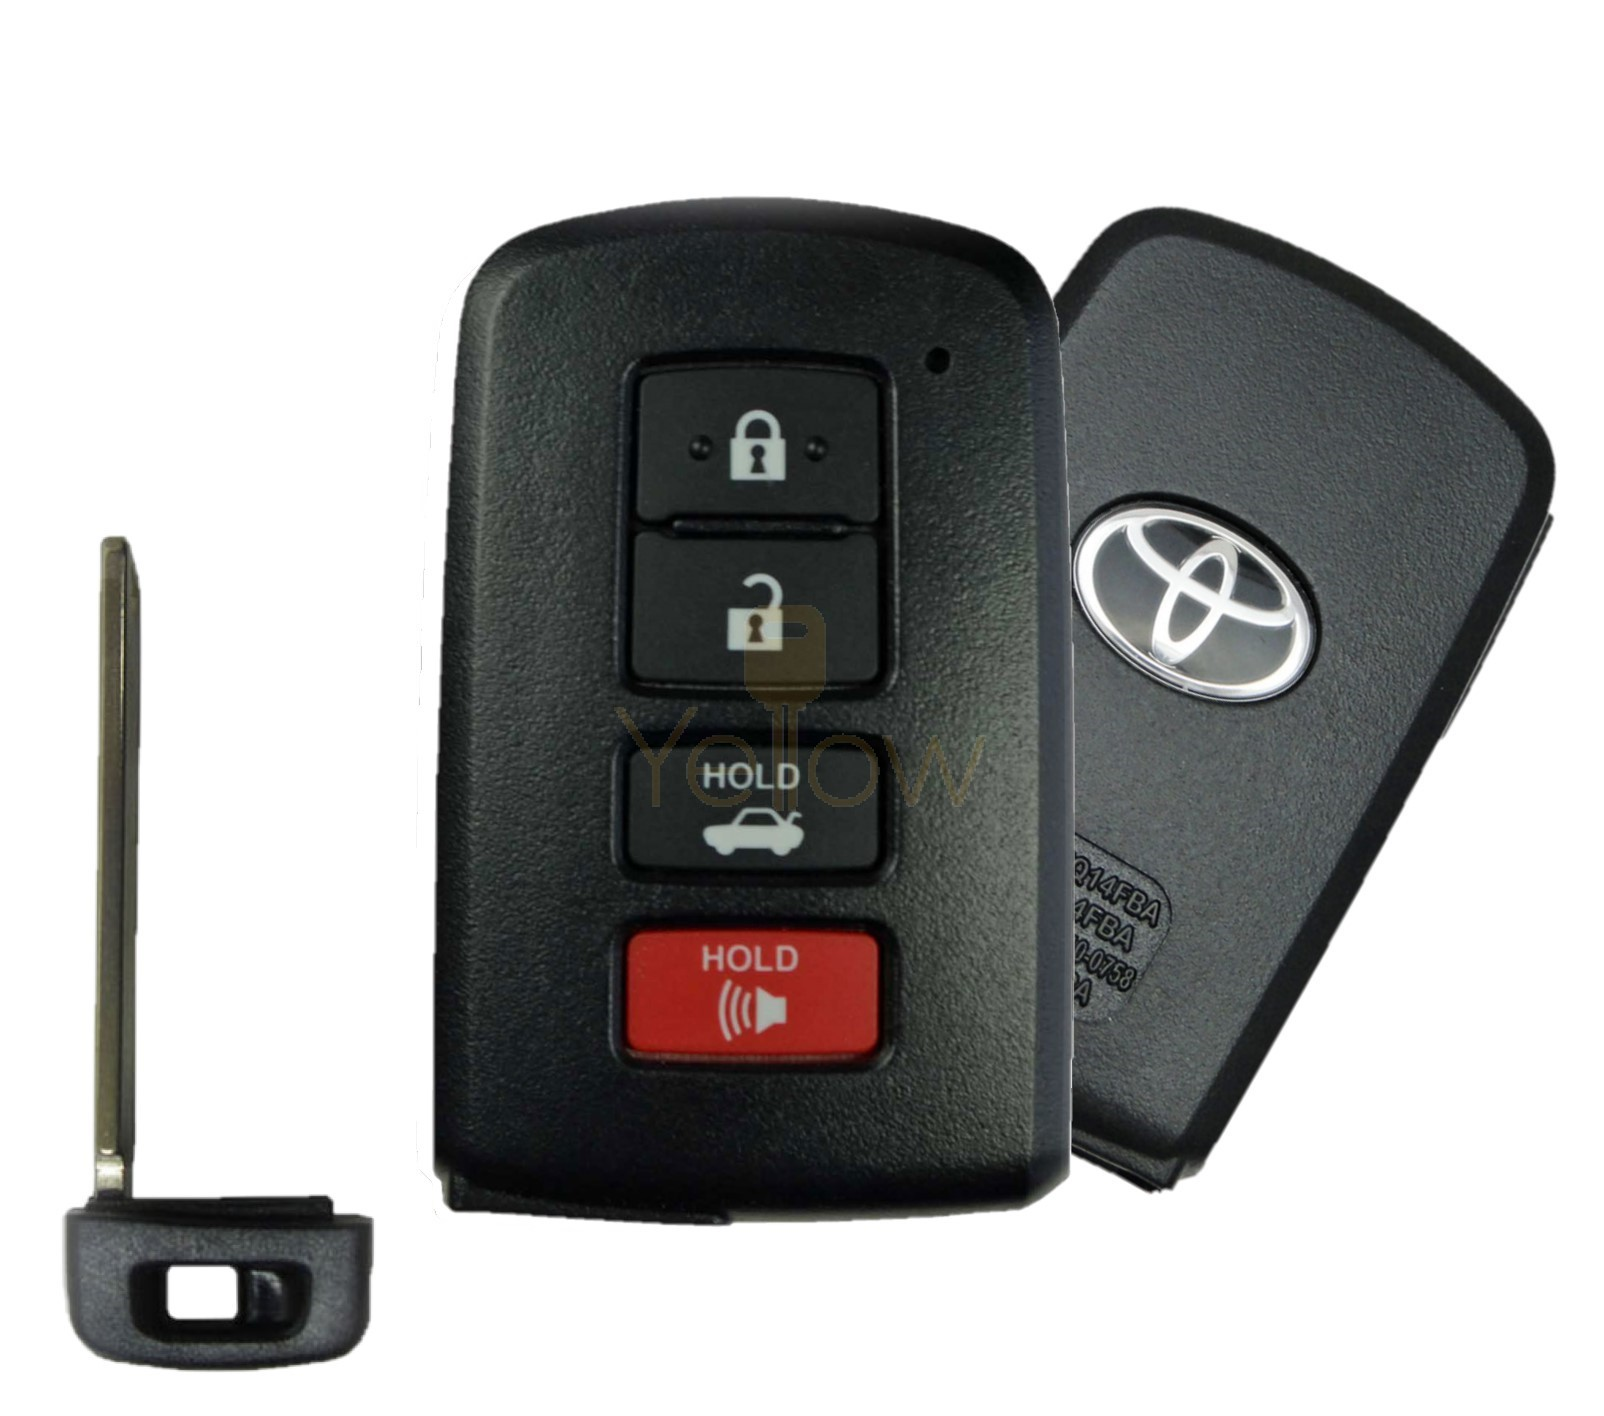 2012-2020 TOYOTA CAMRY AVALON COROLLA SMART KEY 4B (G BOARD) PN 89904-06140